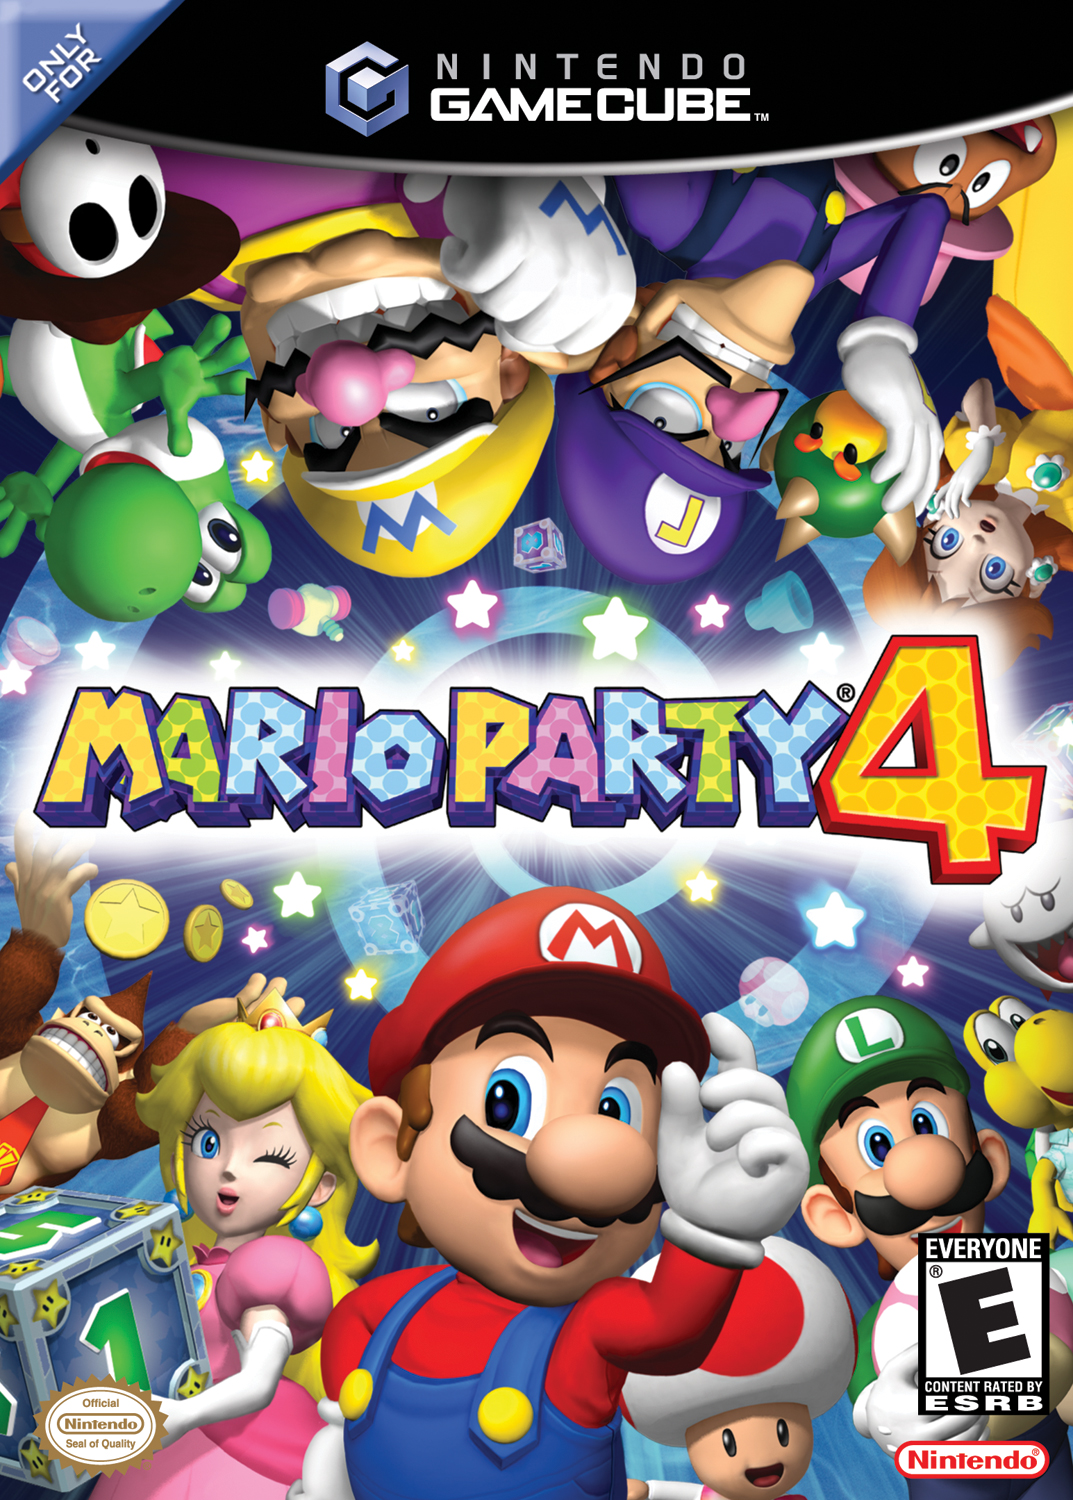 Mario Party 4 Mariowiki Fandom Powered By Wikia Luigi Circuit Wii Super Wiki The Encyclopedia North American Boxart For